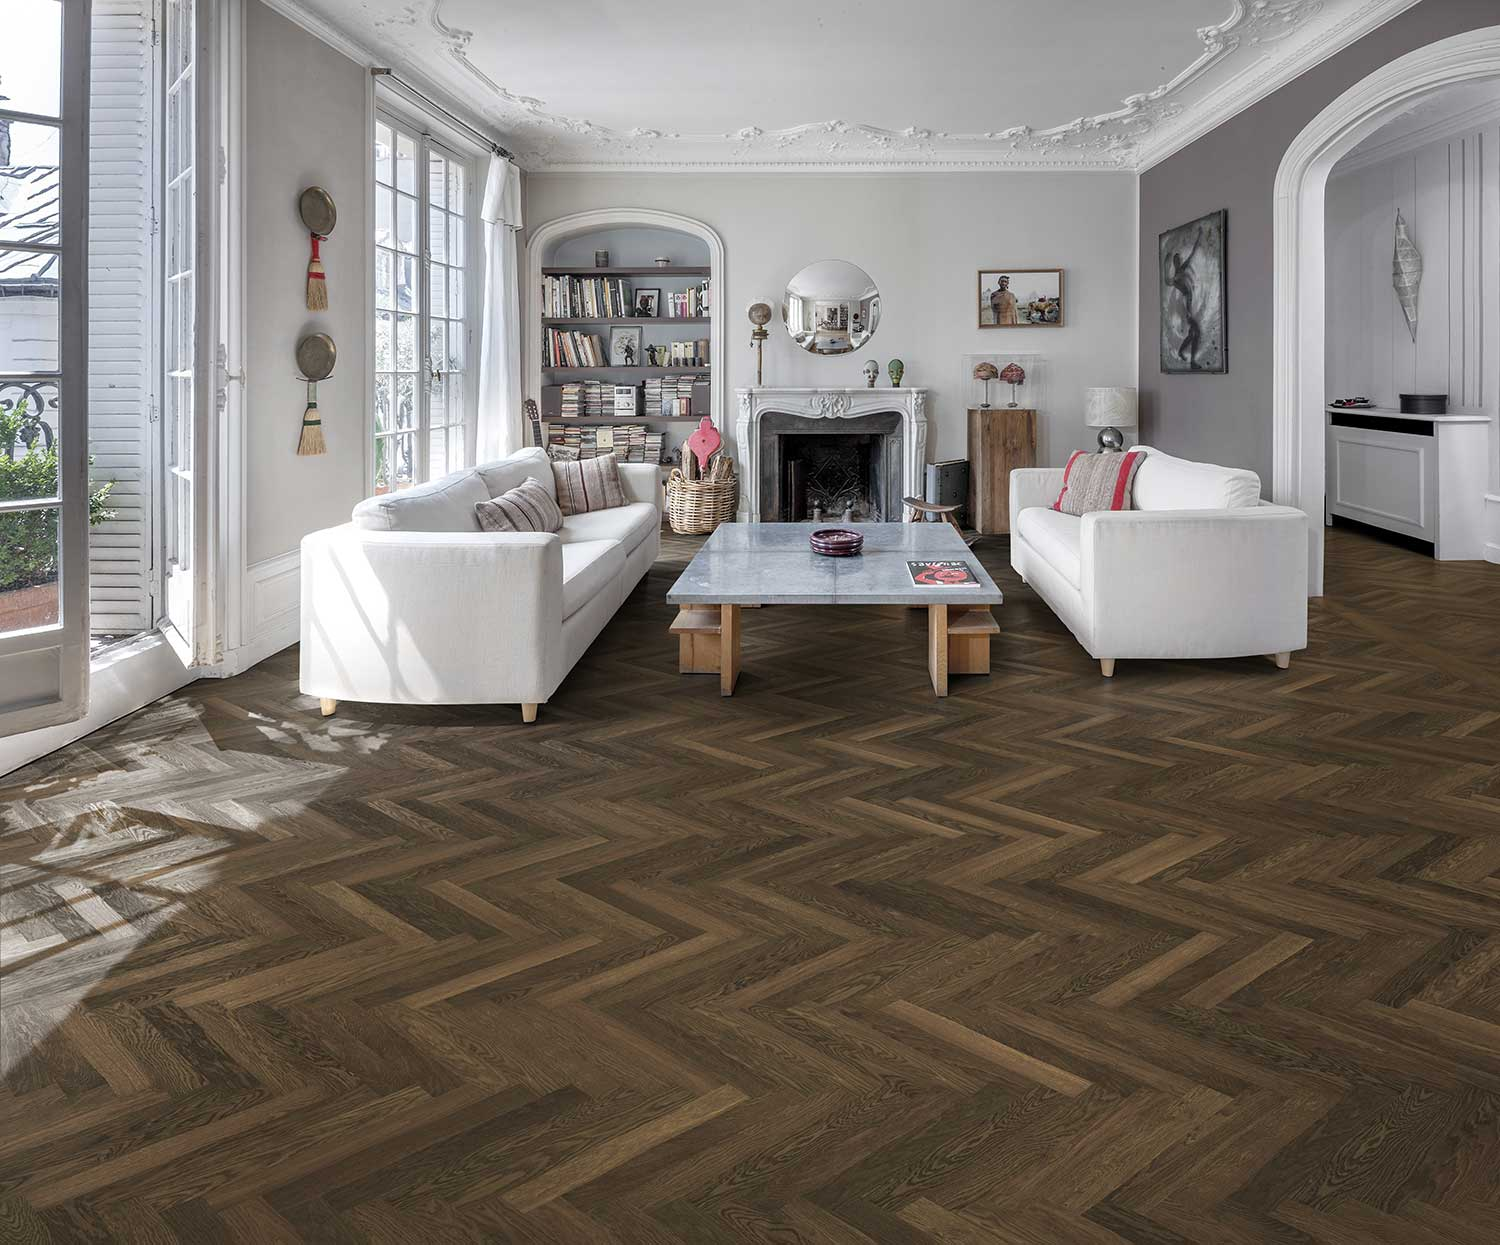 liphook carpet warehouse wood flooring